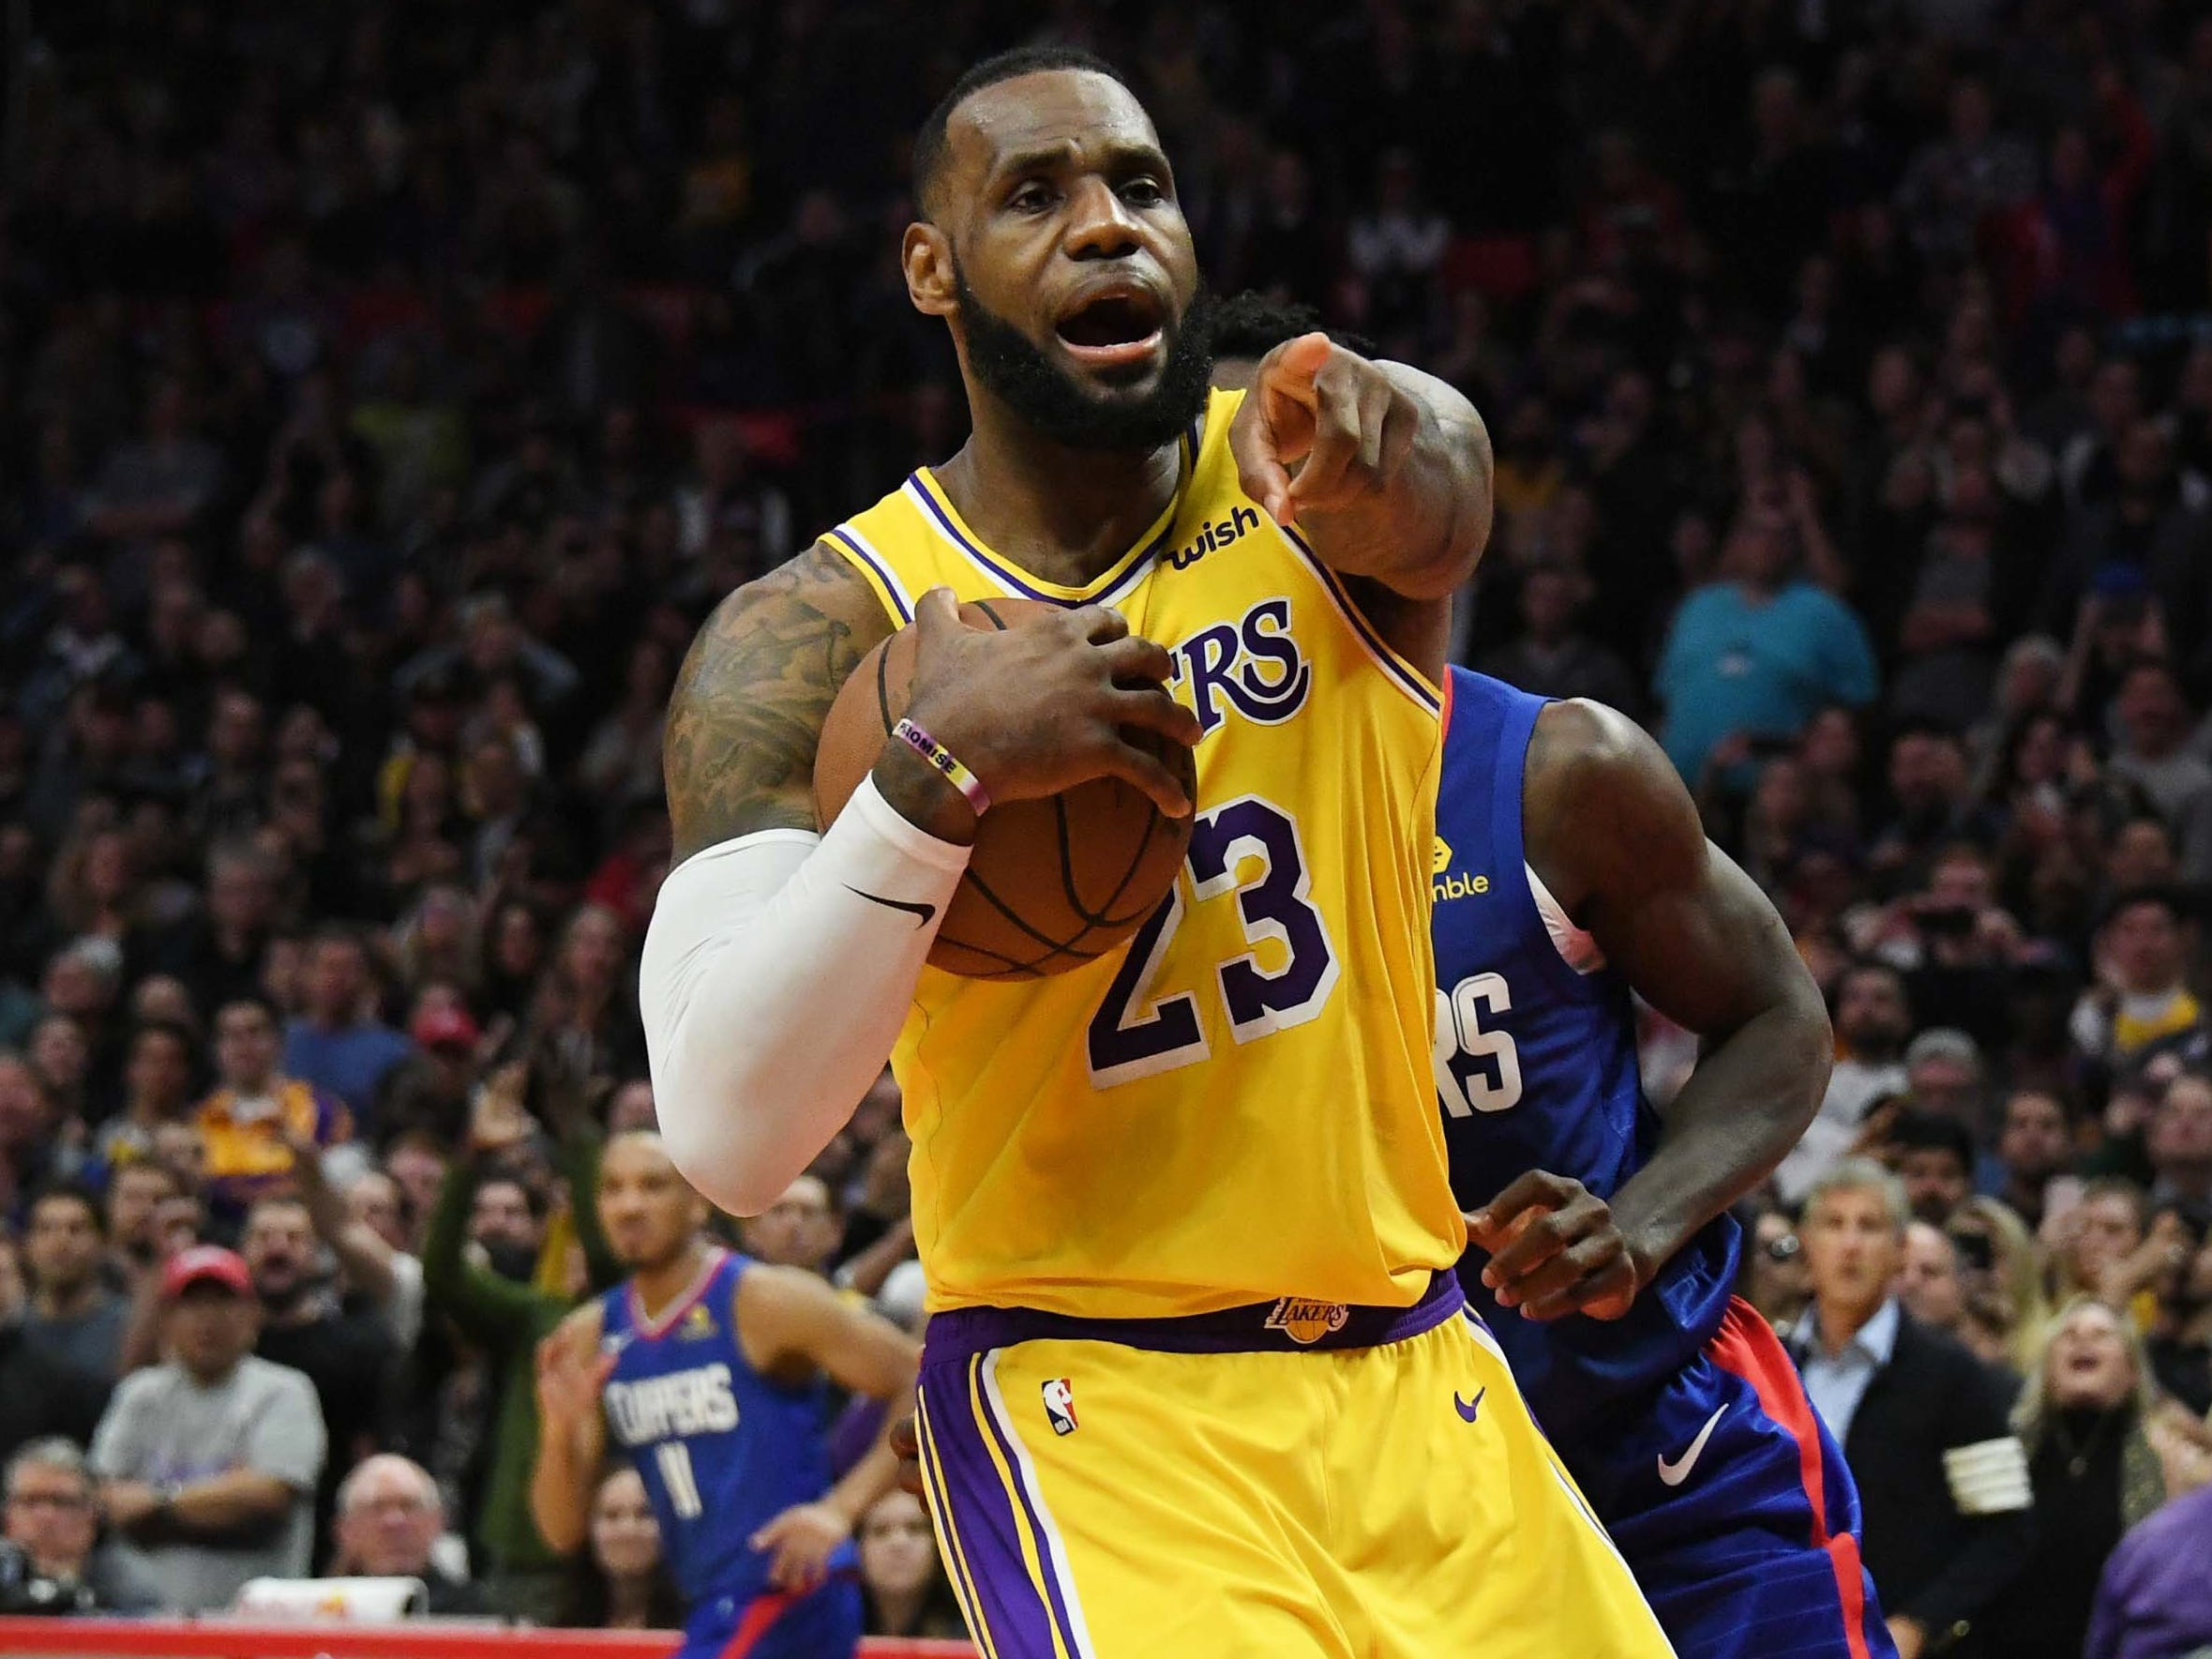 Jan. 31: LeBron James returned to the court following the longest injury absence of his career, leading the Lakers to a 123-120 win over the Clippers after missing 17 games with a strained groin.